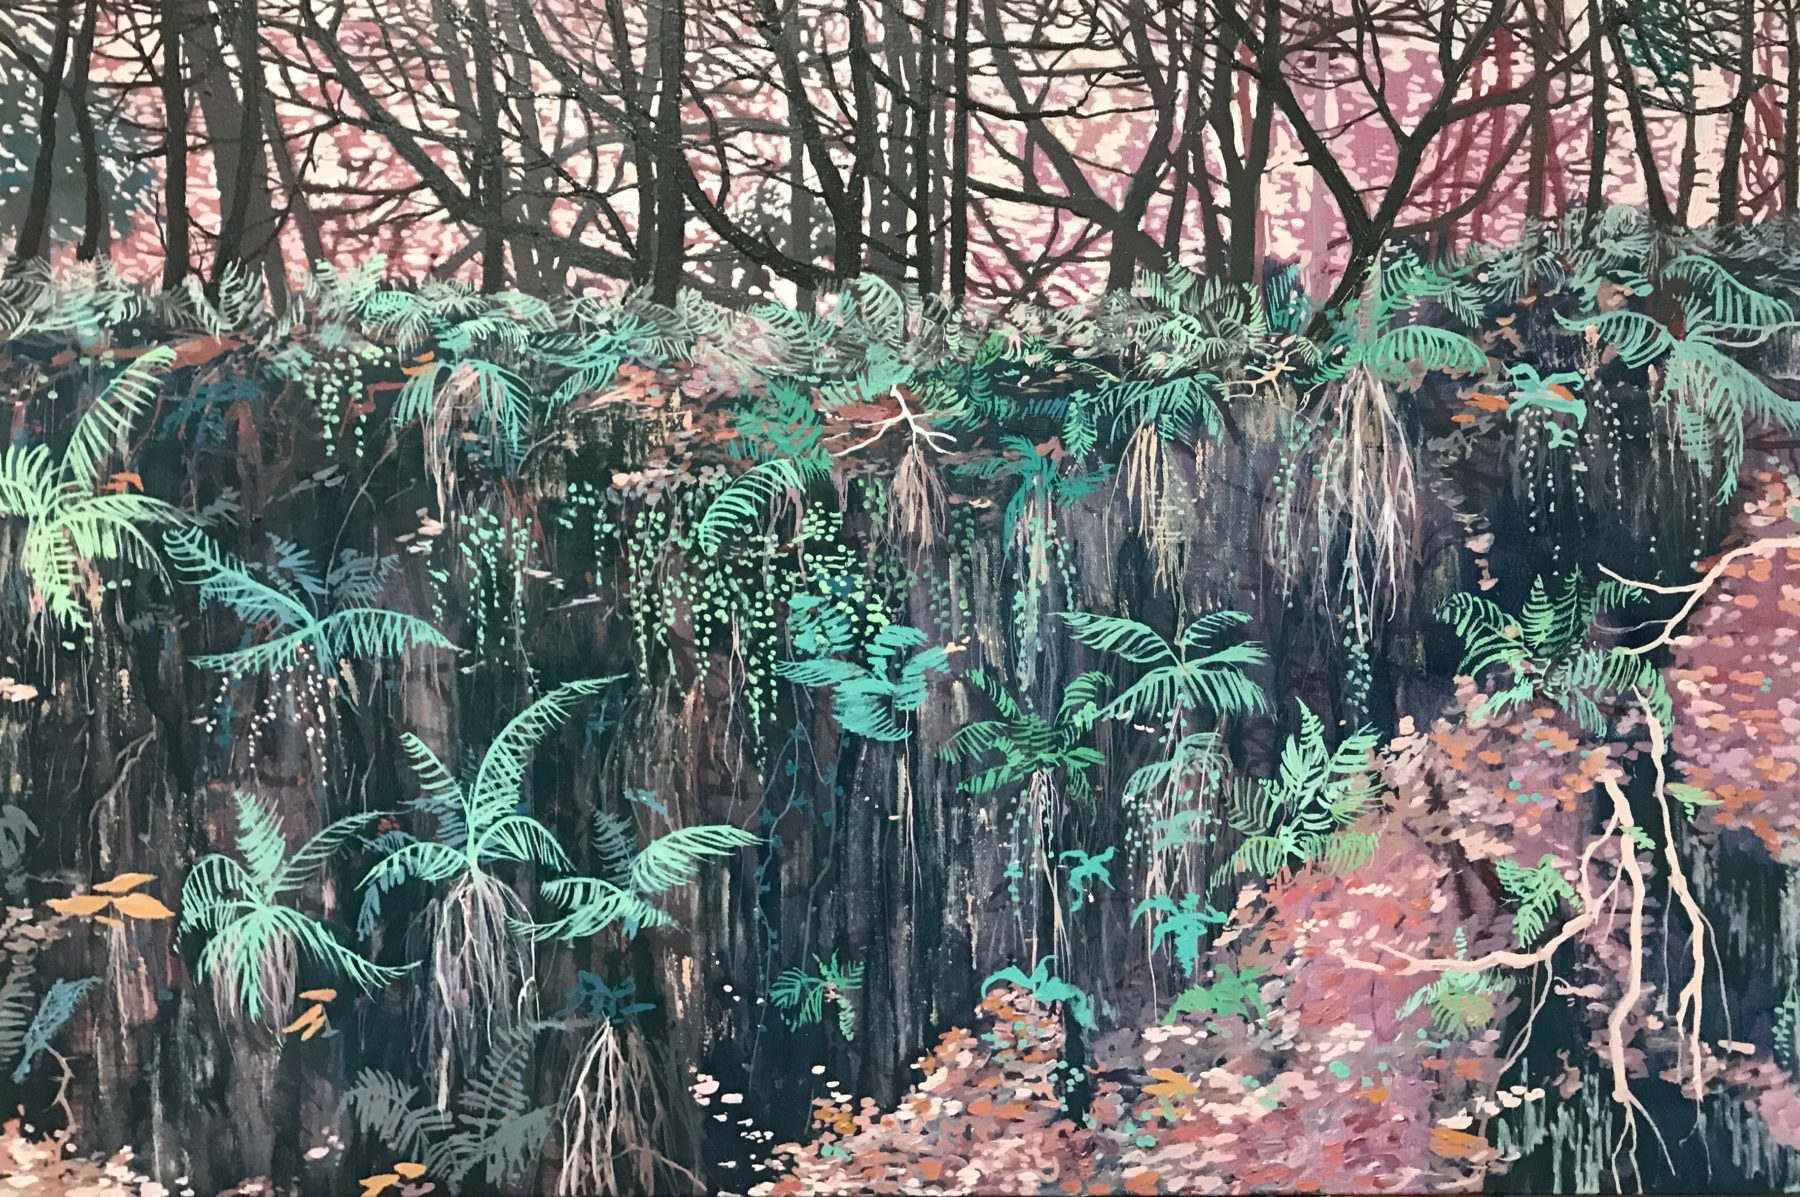 An abstracted version of a forest made up of fern leaves and tumbling foliage in green and pink hues dominate the canvas. Dark brown trunks of trees are packed close together in the background of the image.